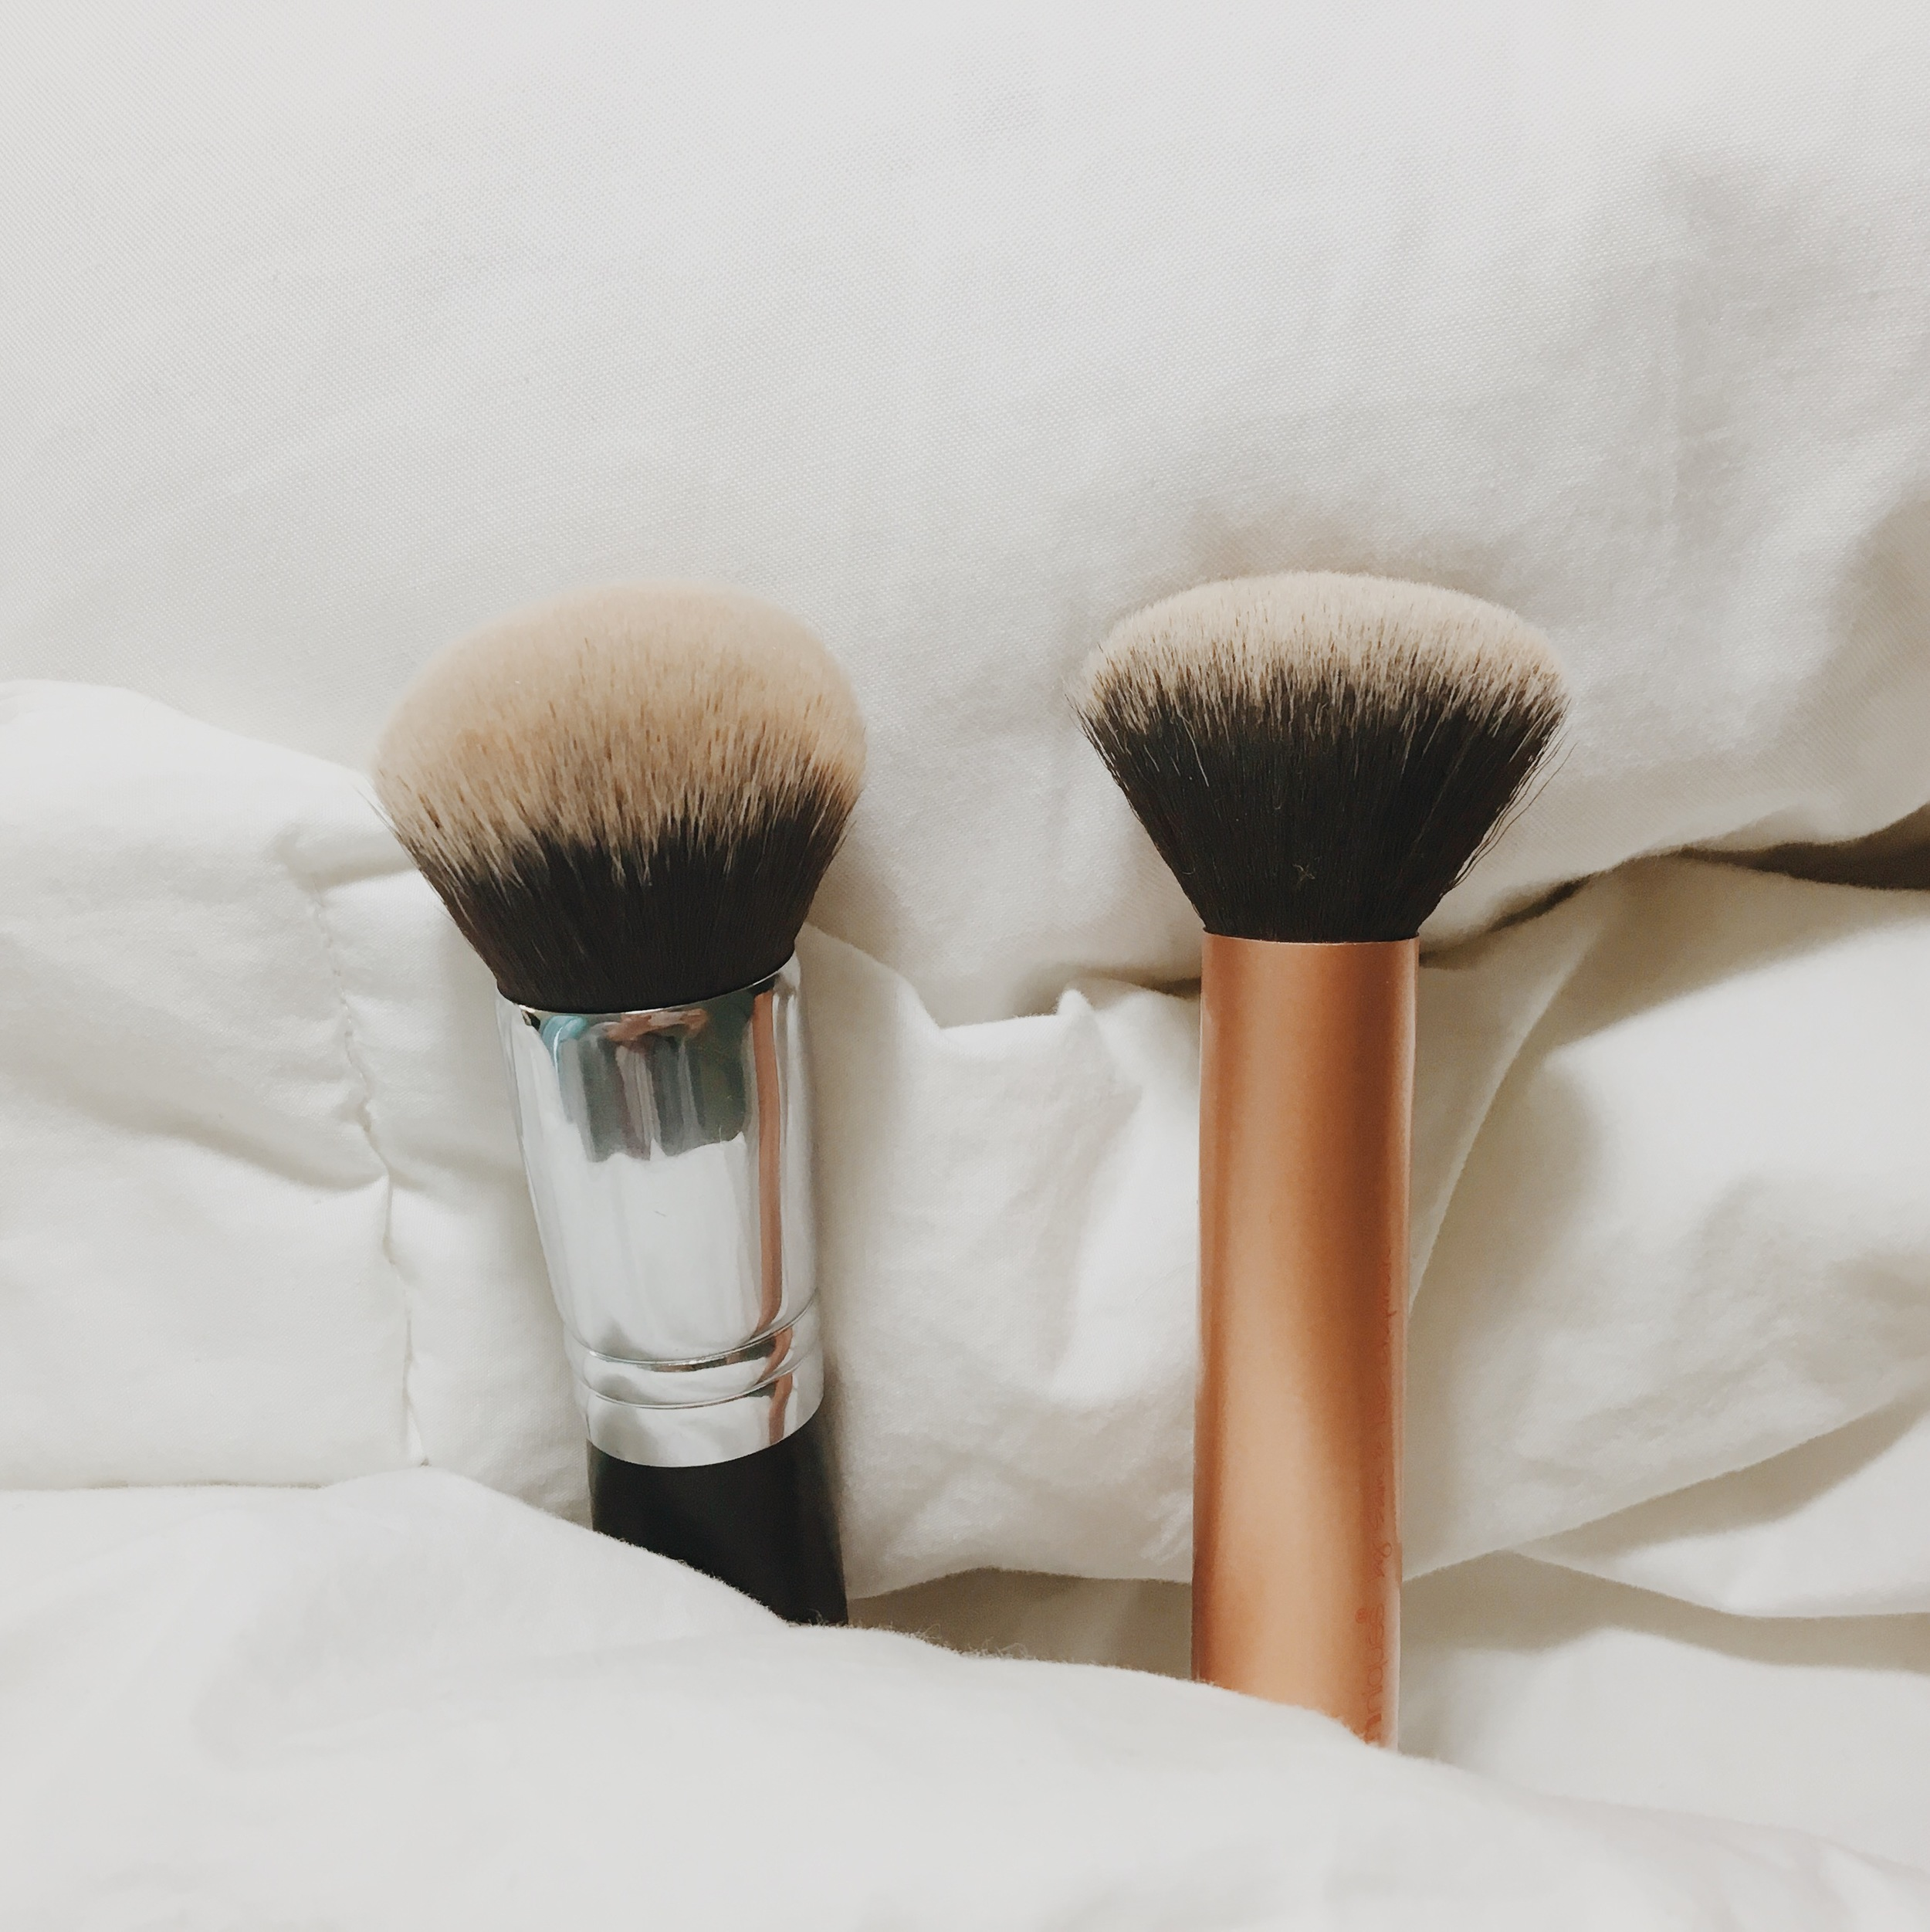 Left: Morphe M439 Right: Real Techniques Buffing Brush